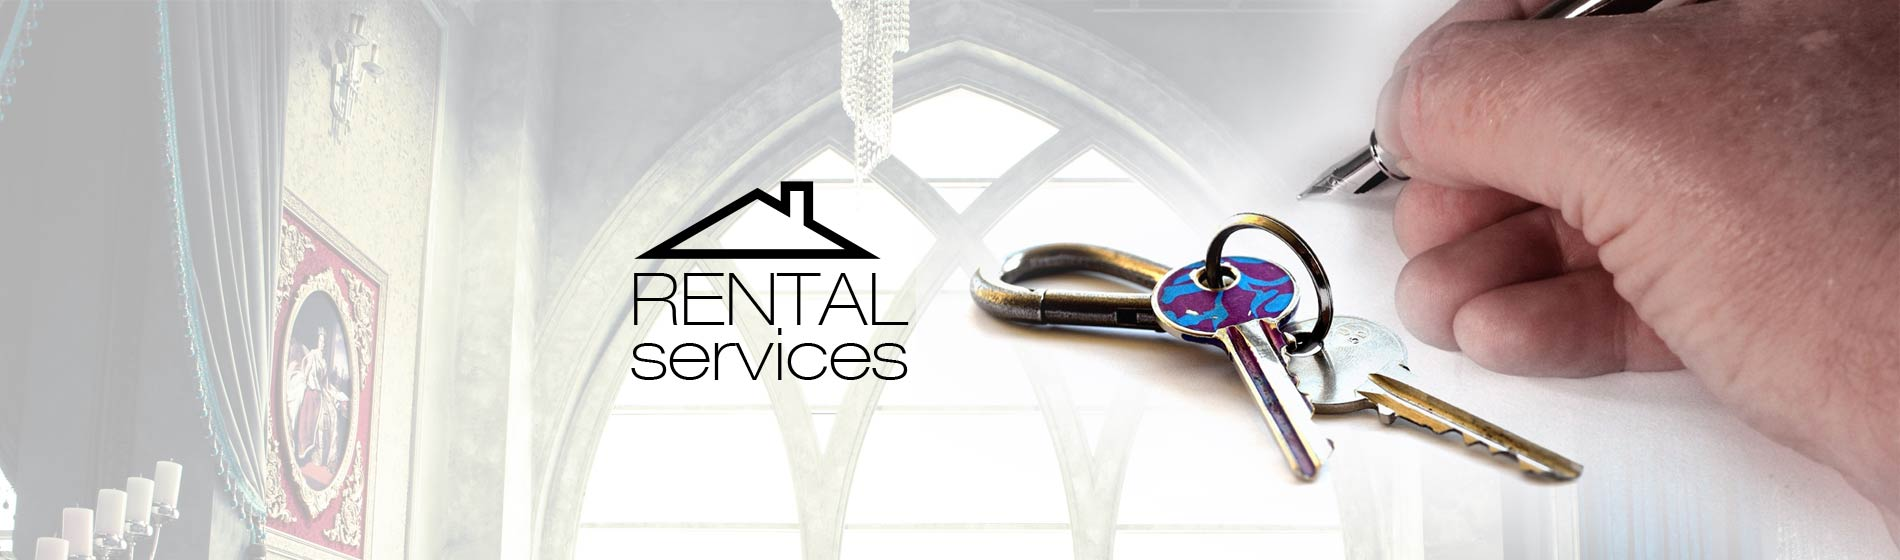 SAP Business One for Rental Services